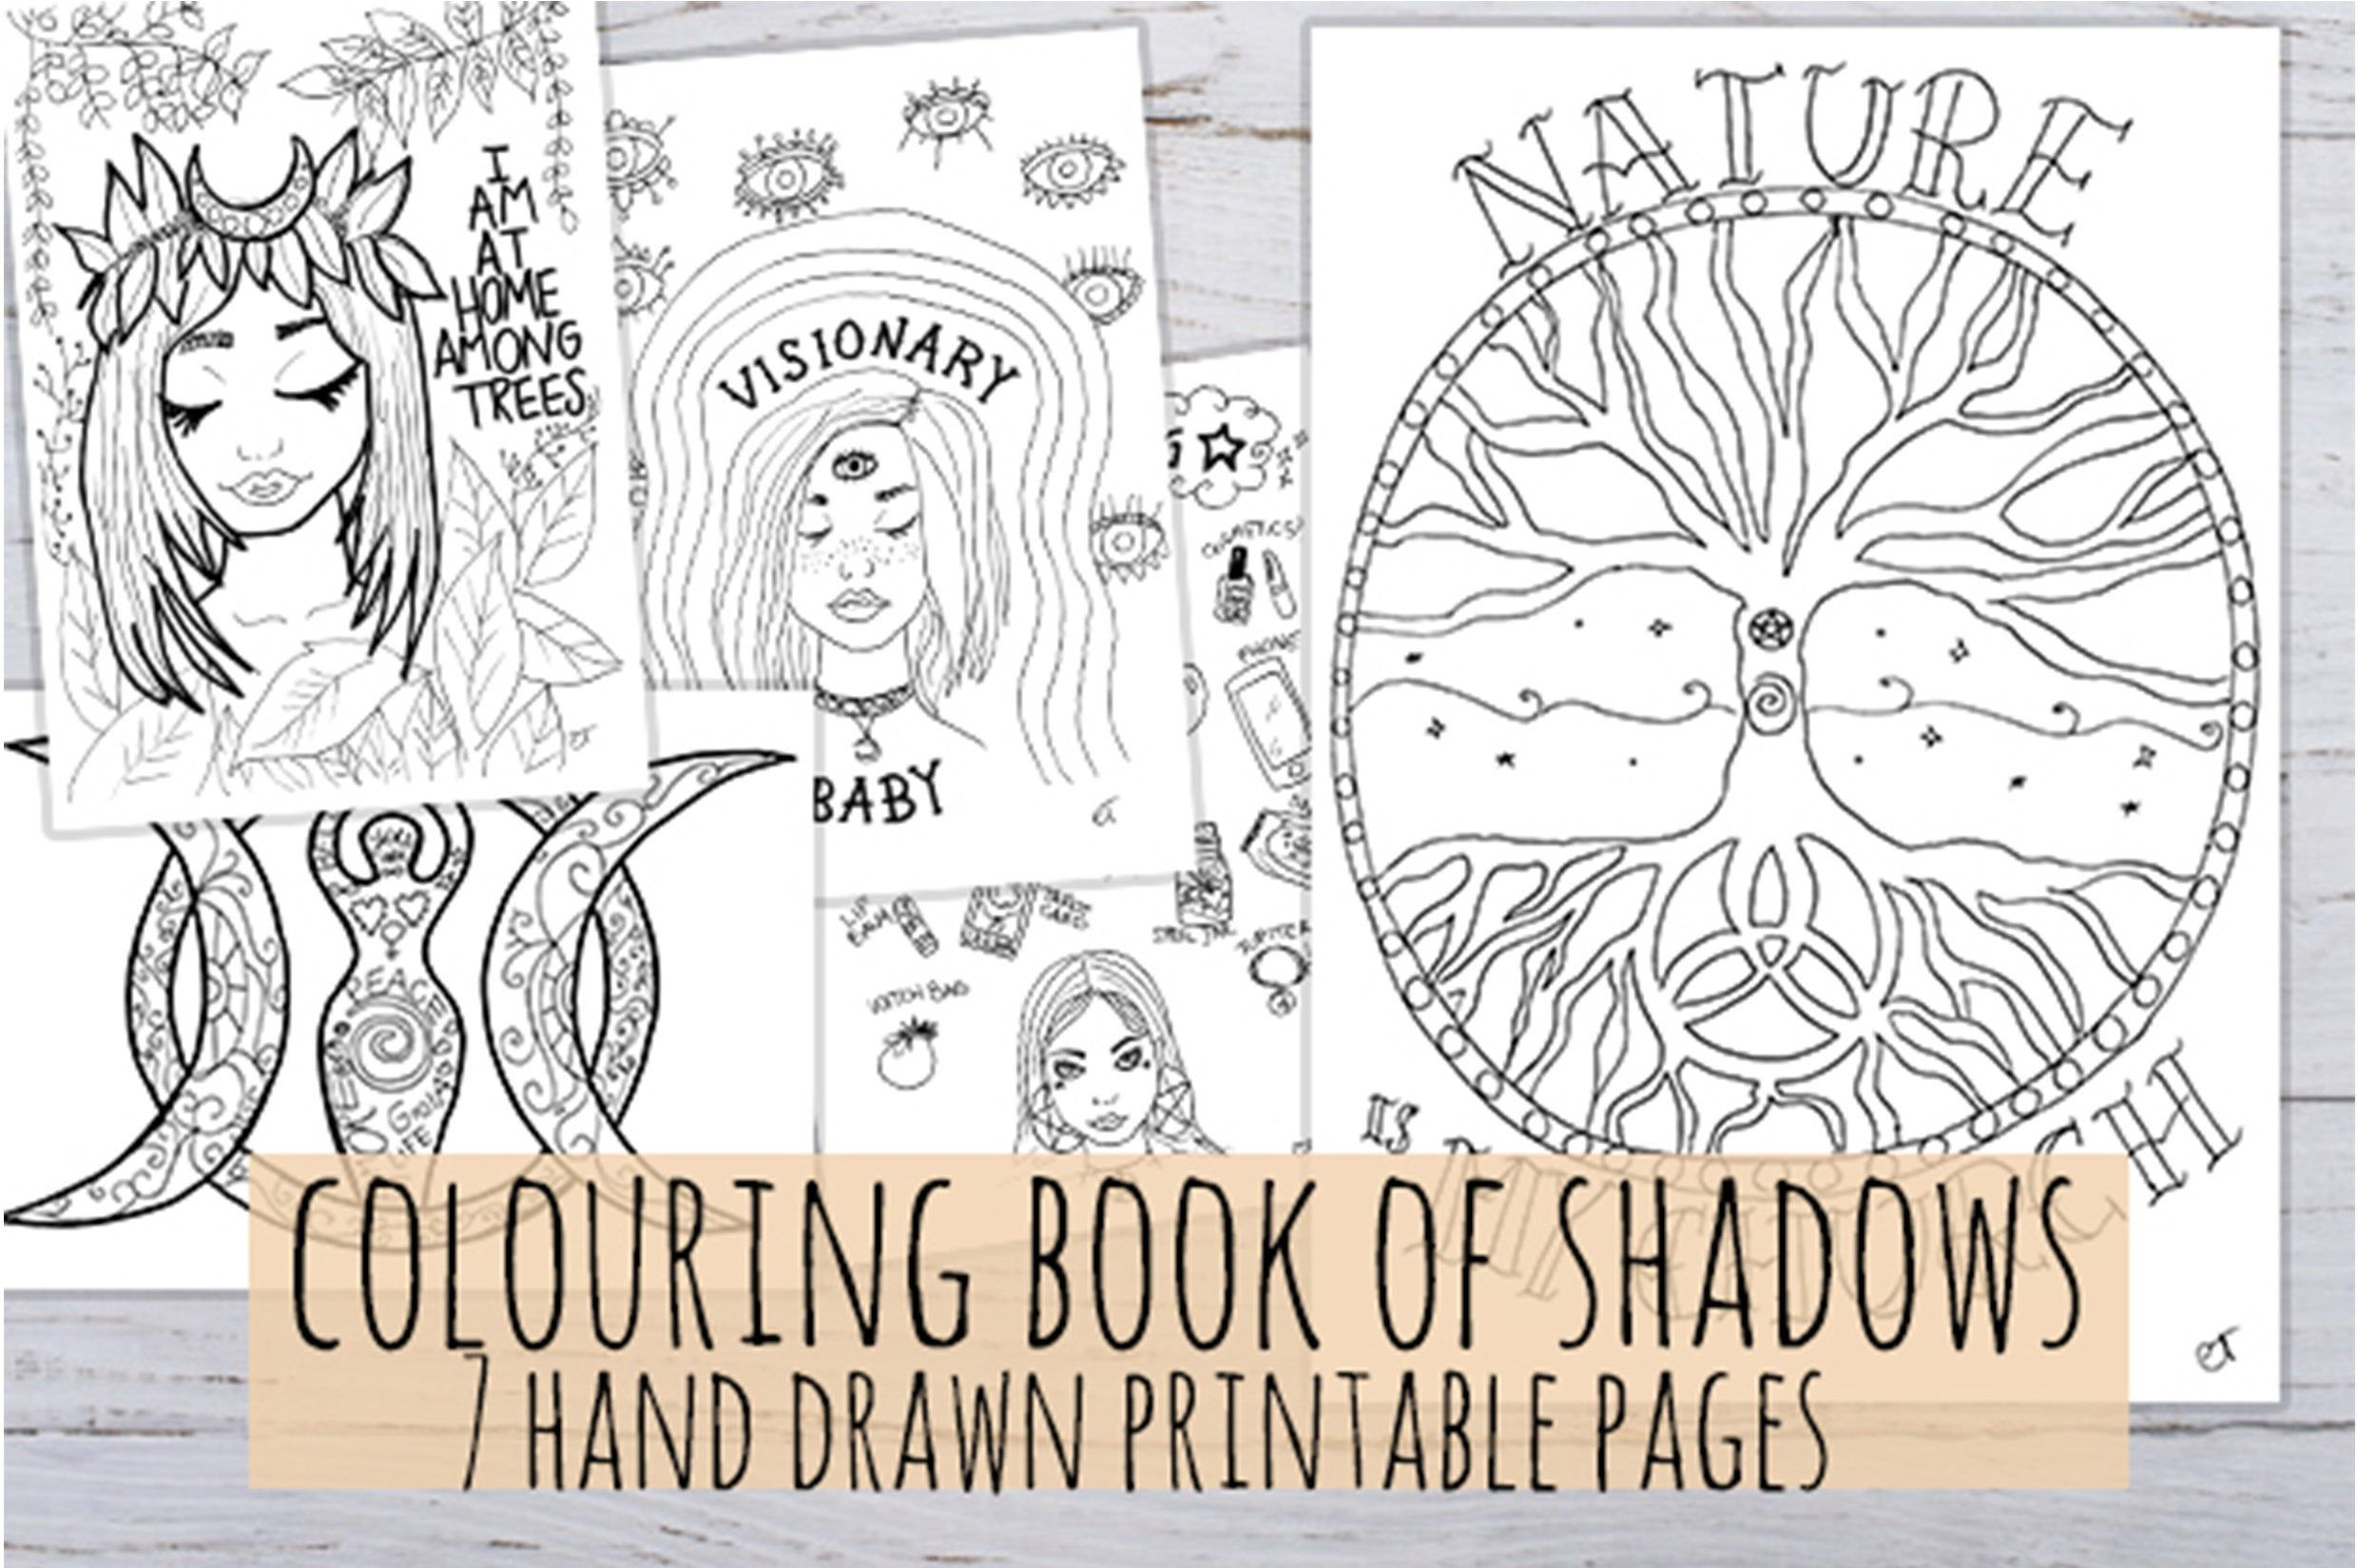 Coloring Book Of Shadows Printable Etsy In 2021 Book Of Shadows Coloring Books Printable Coloring Book